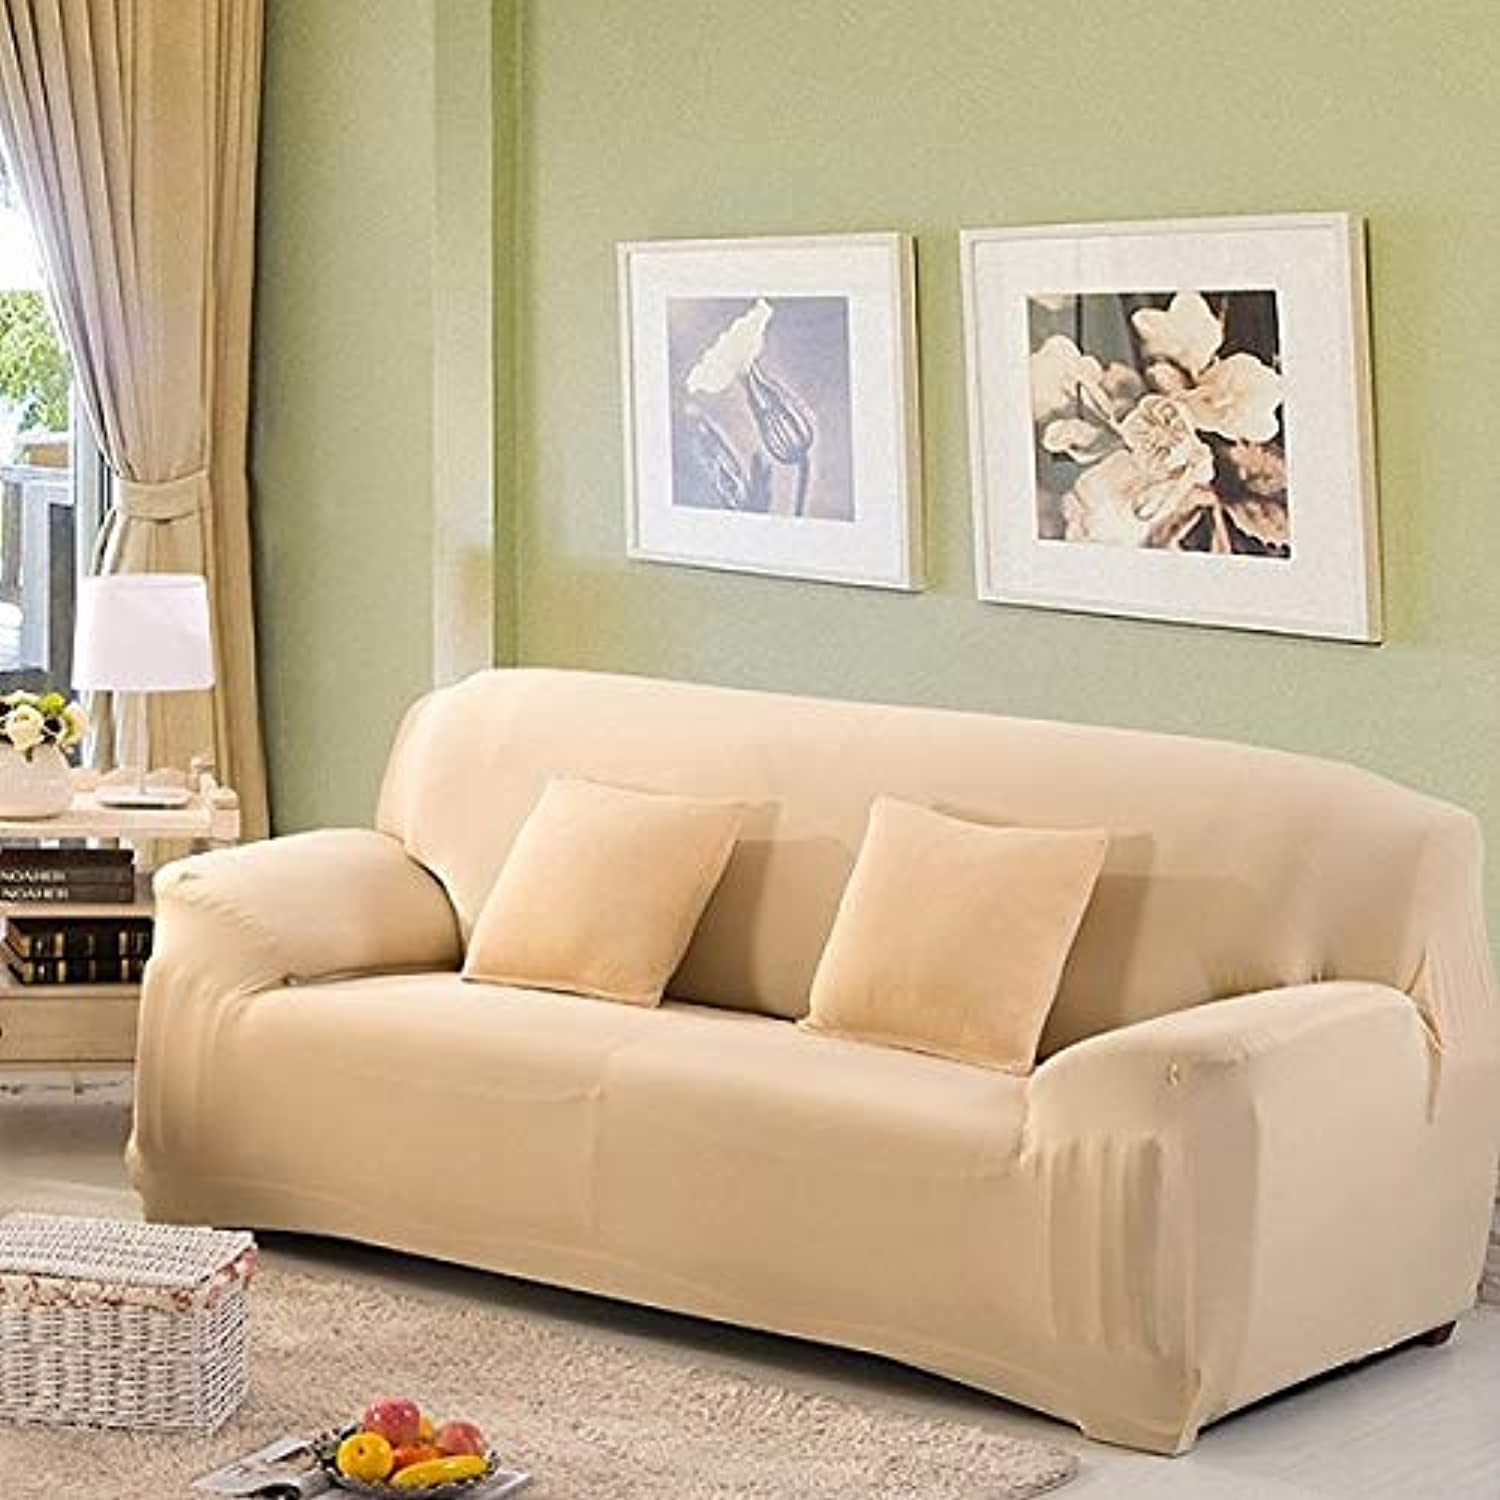 Sofa Cover Tight Wrap All-Inclusive Stretch Modern Sofa Covers for Living Room Washable Home Hotel Couch Cover copridivano   color 5, 2seater 145-185cm